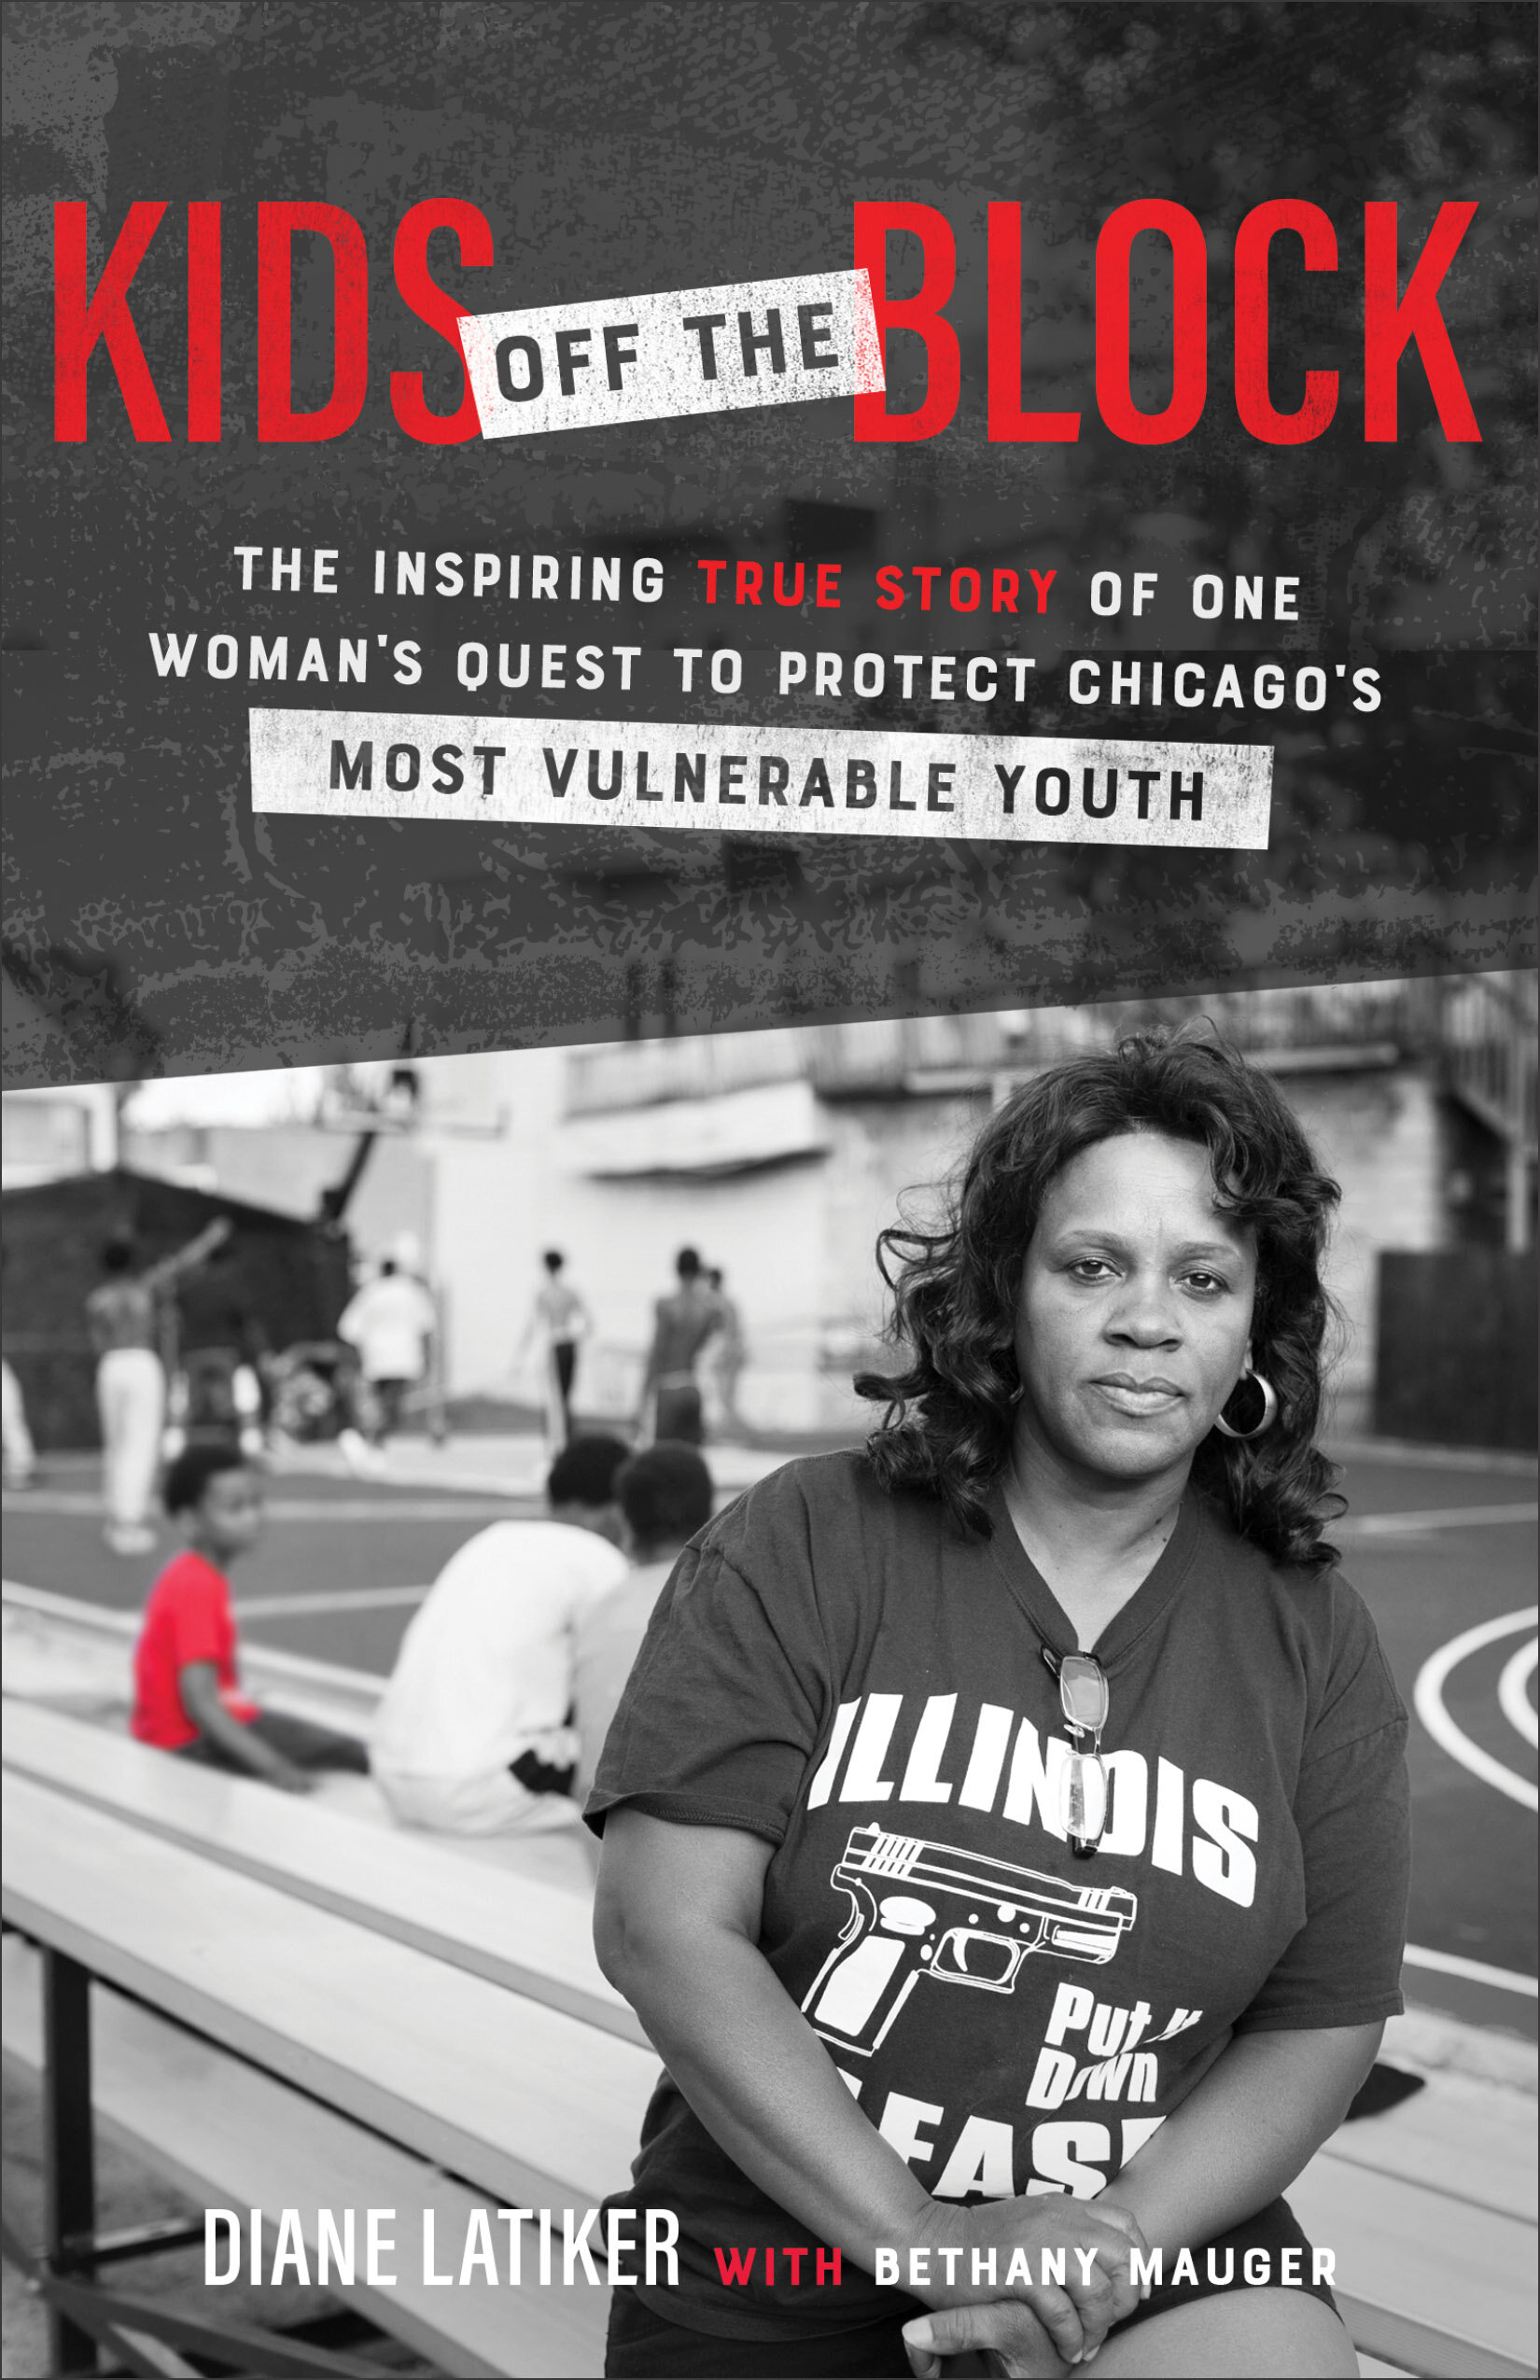 Kids Off the Block: The Inspiring True Story of One Woman's Quest to Protect Chicago's Most Vulnerable Youth